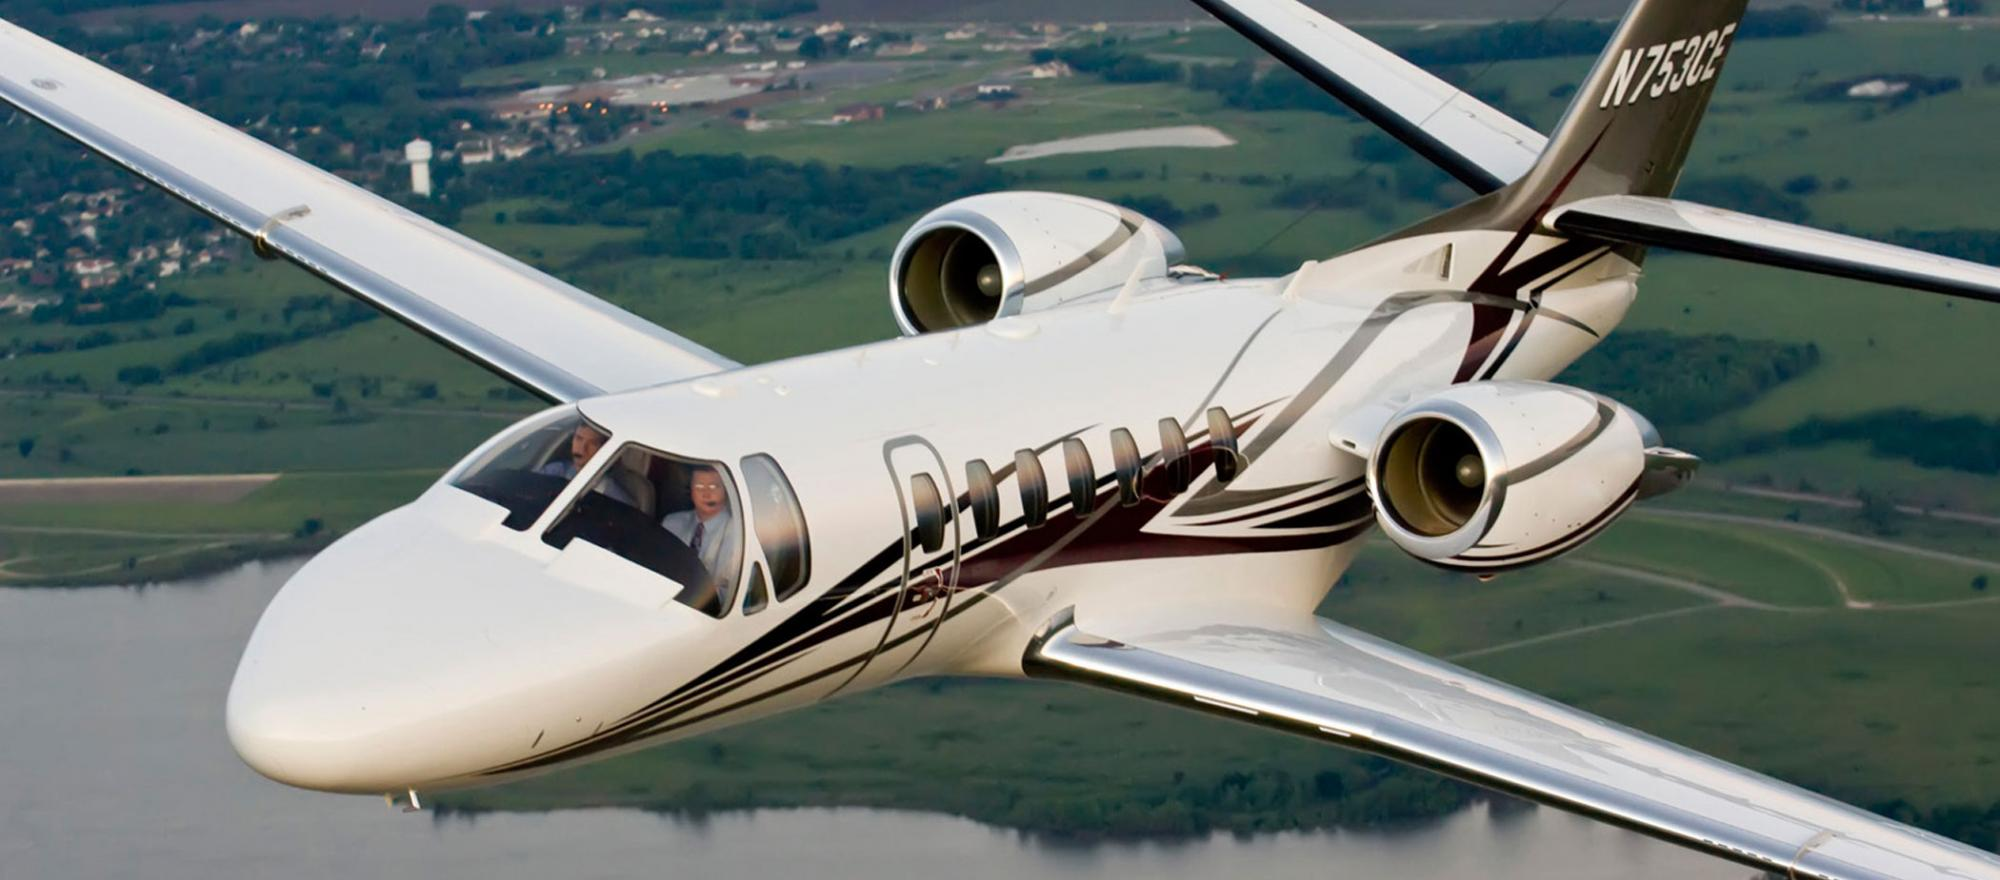 When Embraer sold NetJets a new fleet of Phenom light jets, it took 25 of these Citation Ultras in exchange.